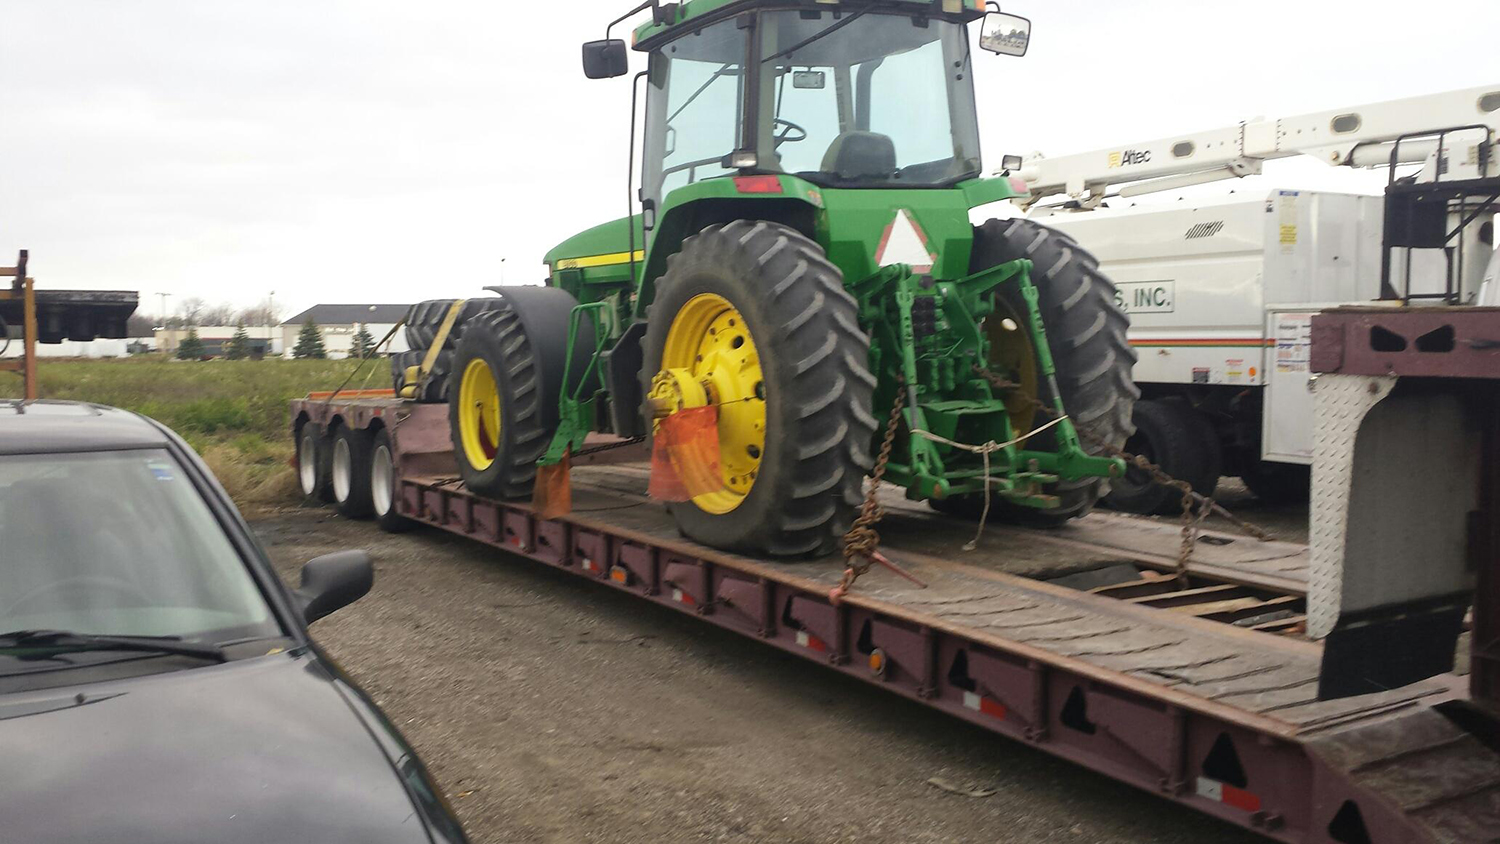 Shipping John Deere 8100 Row Crop Tractor